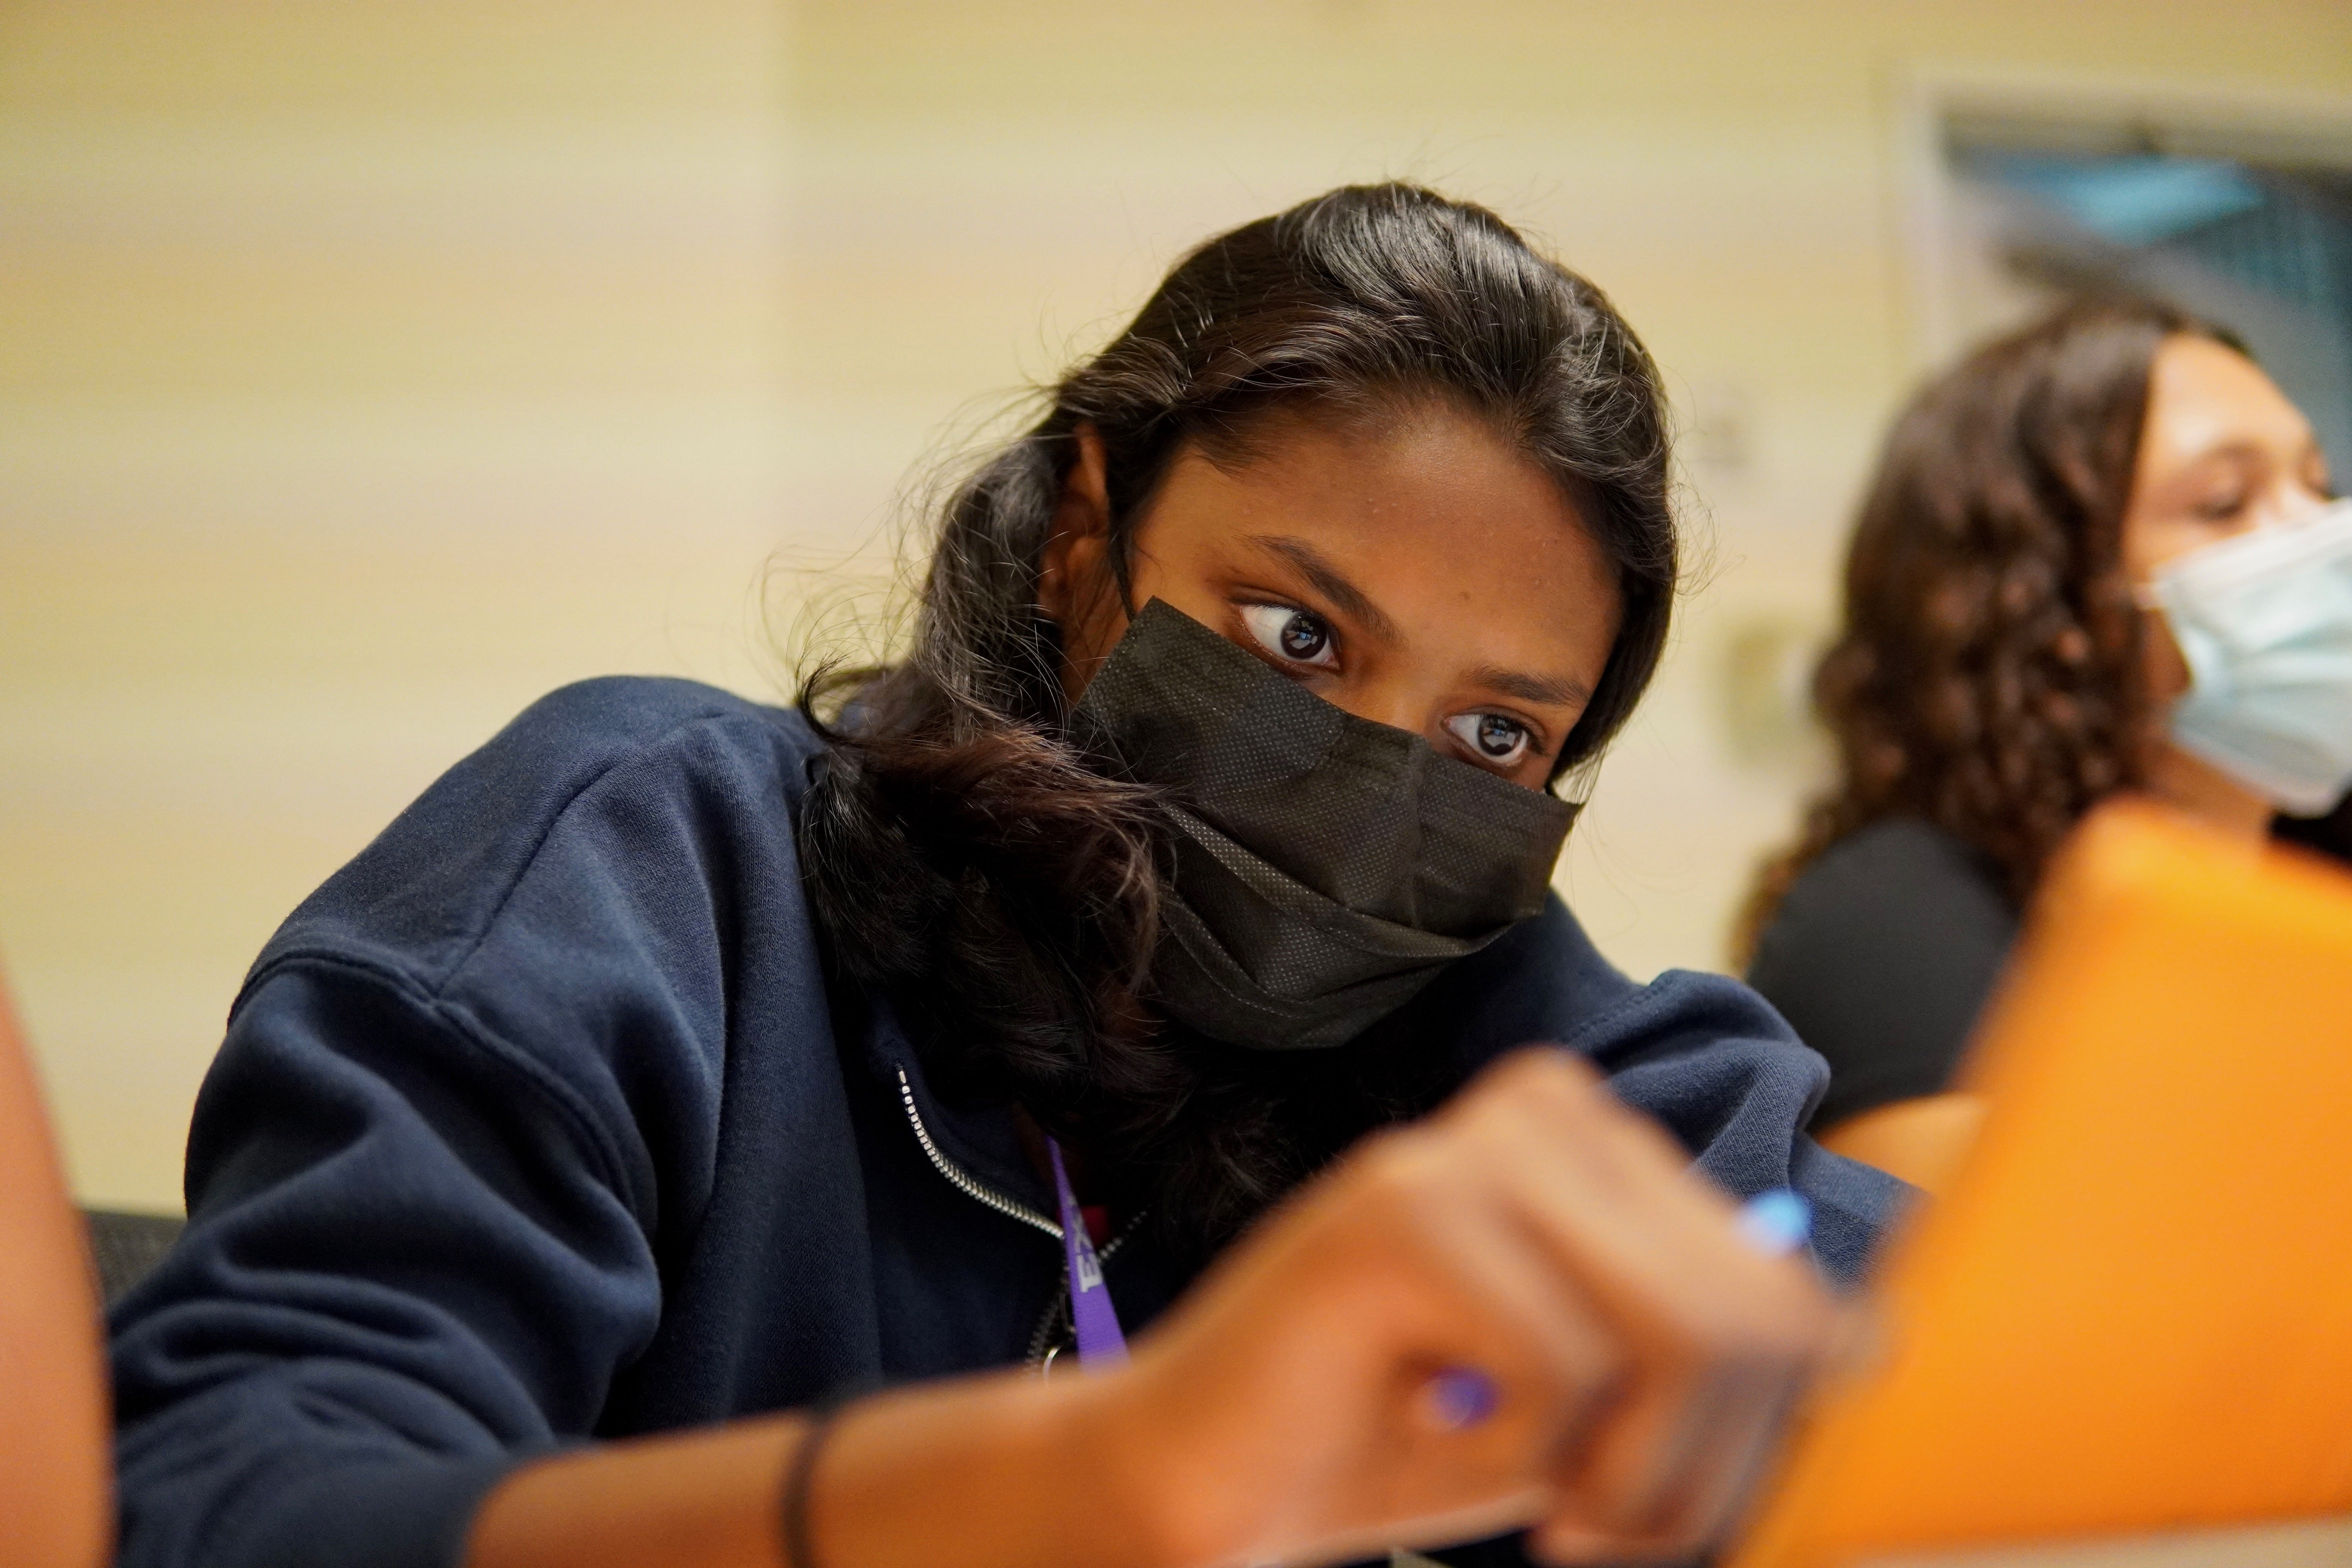 A student in a navy blue hoodie fixates on the iPad in front of her conducting research.